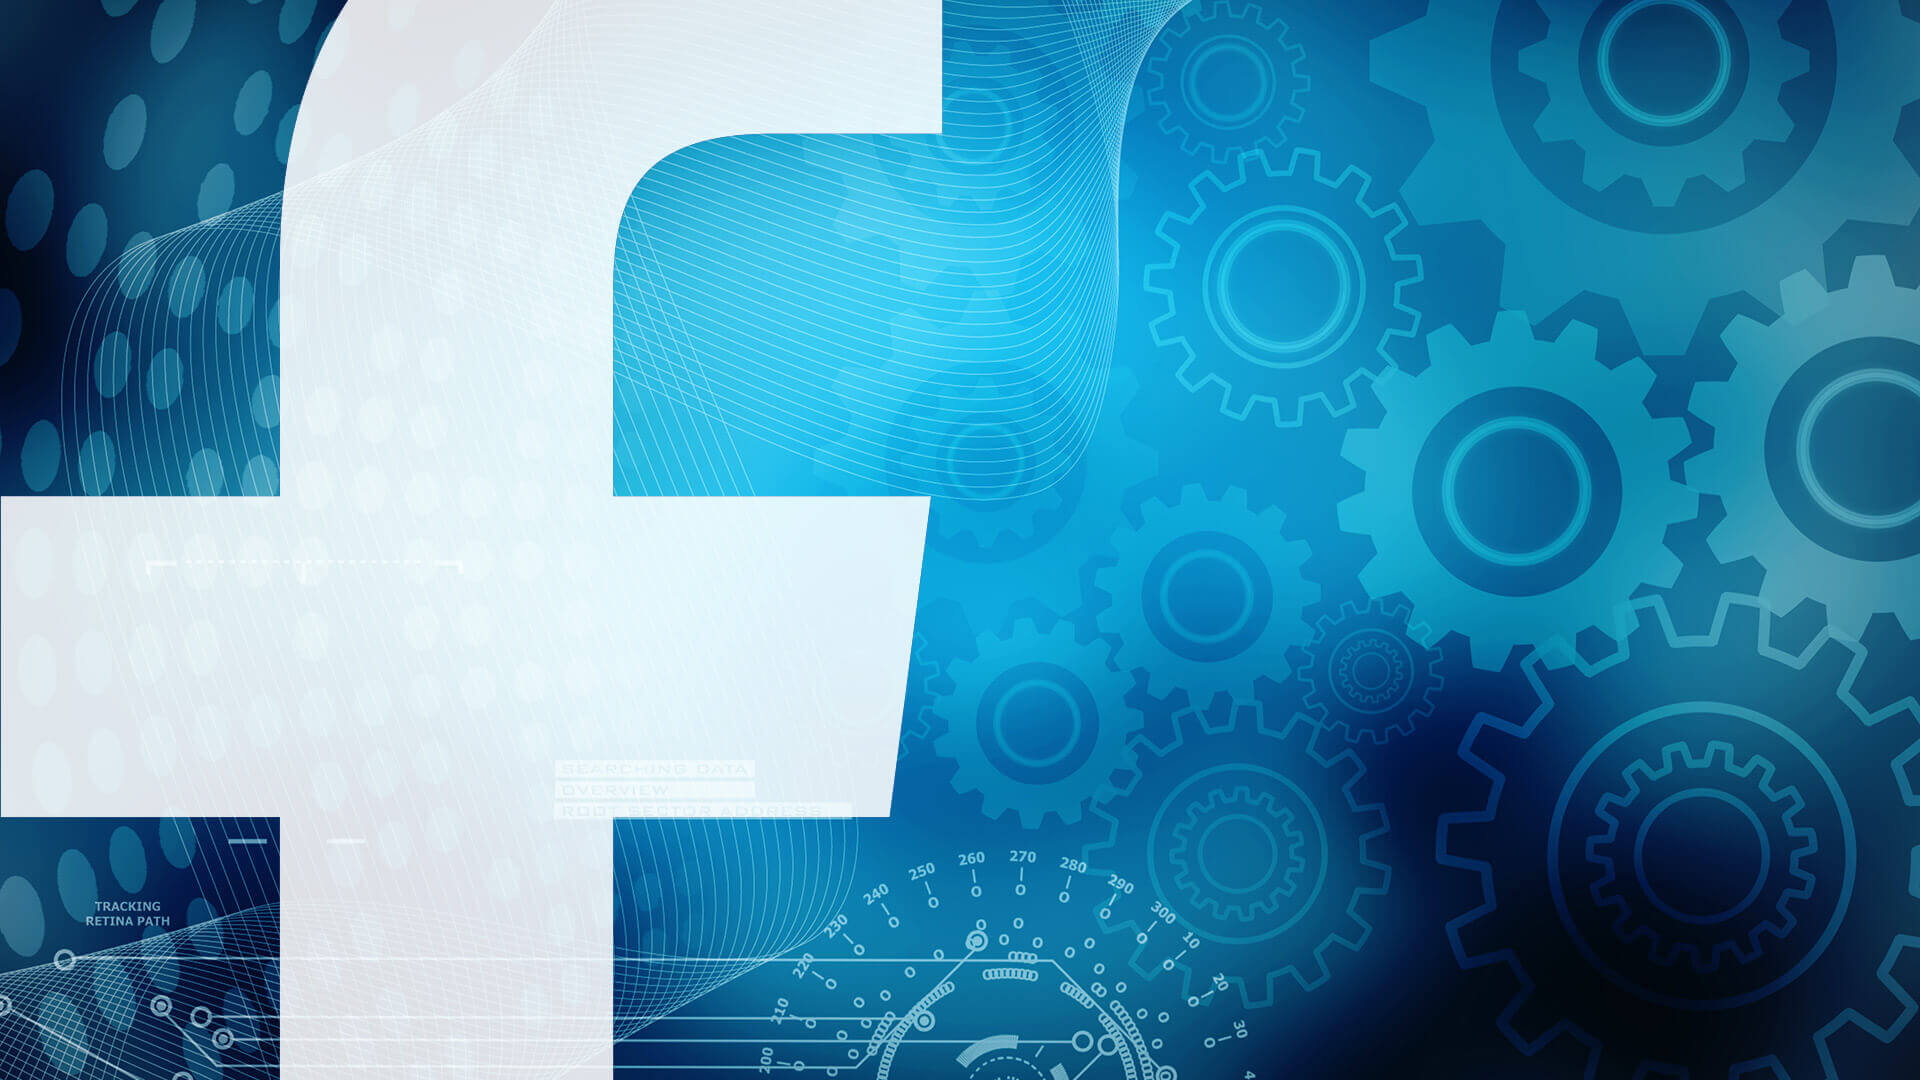 Americans record lowest 'satisfaction' with Facebook since 2015, according to ASCI